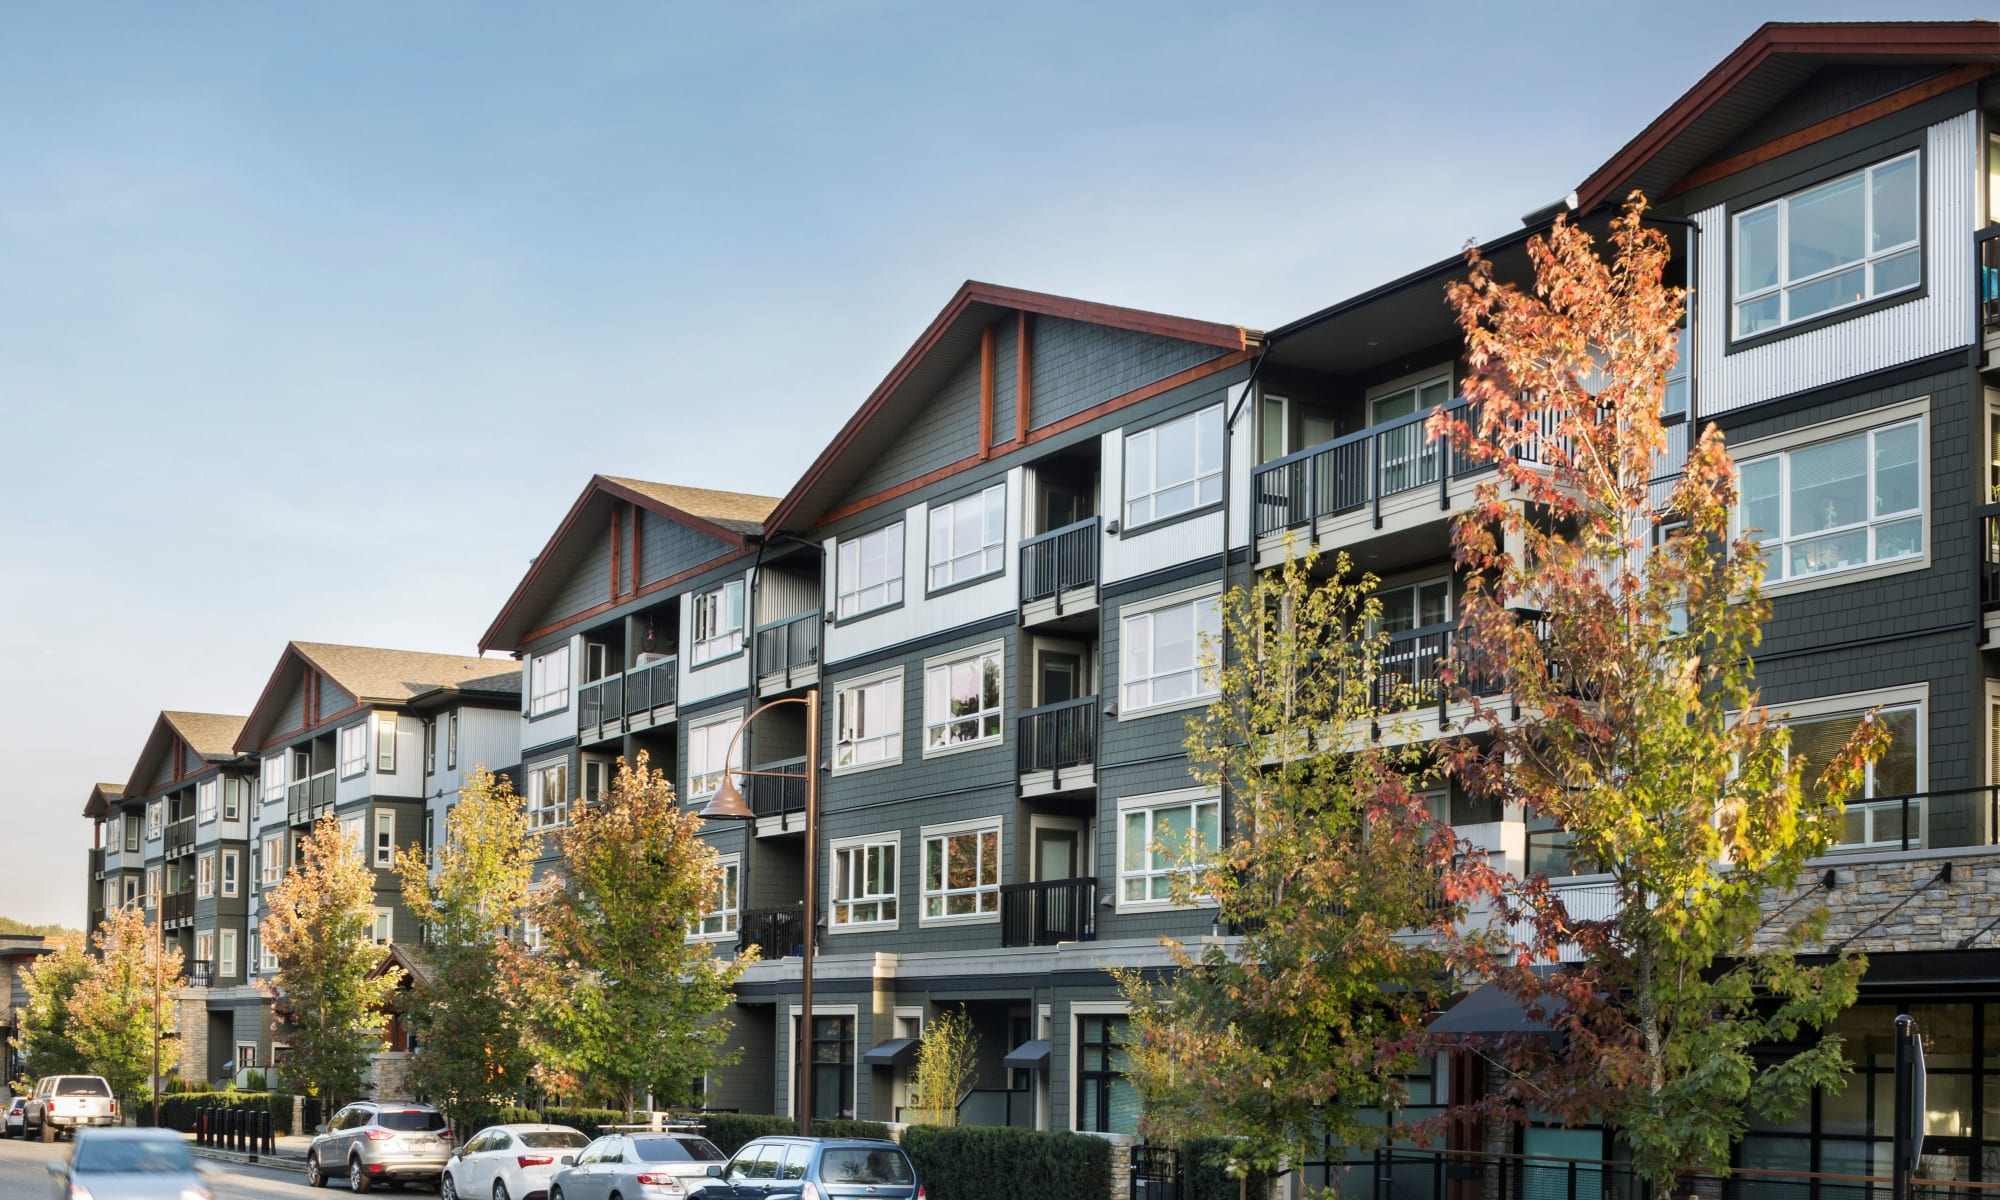 Exterior shot of Northwoods Village in North Vancouver, British Columbia